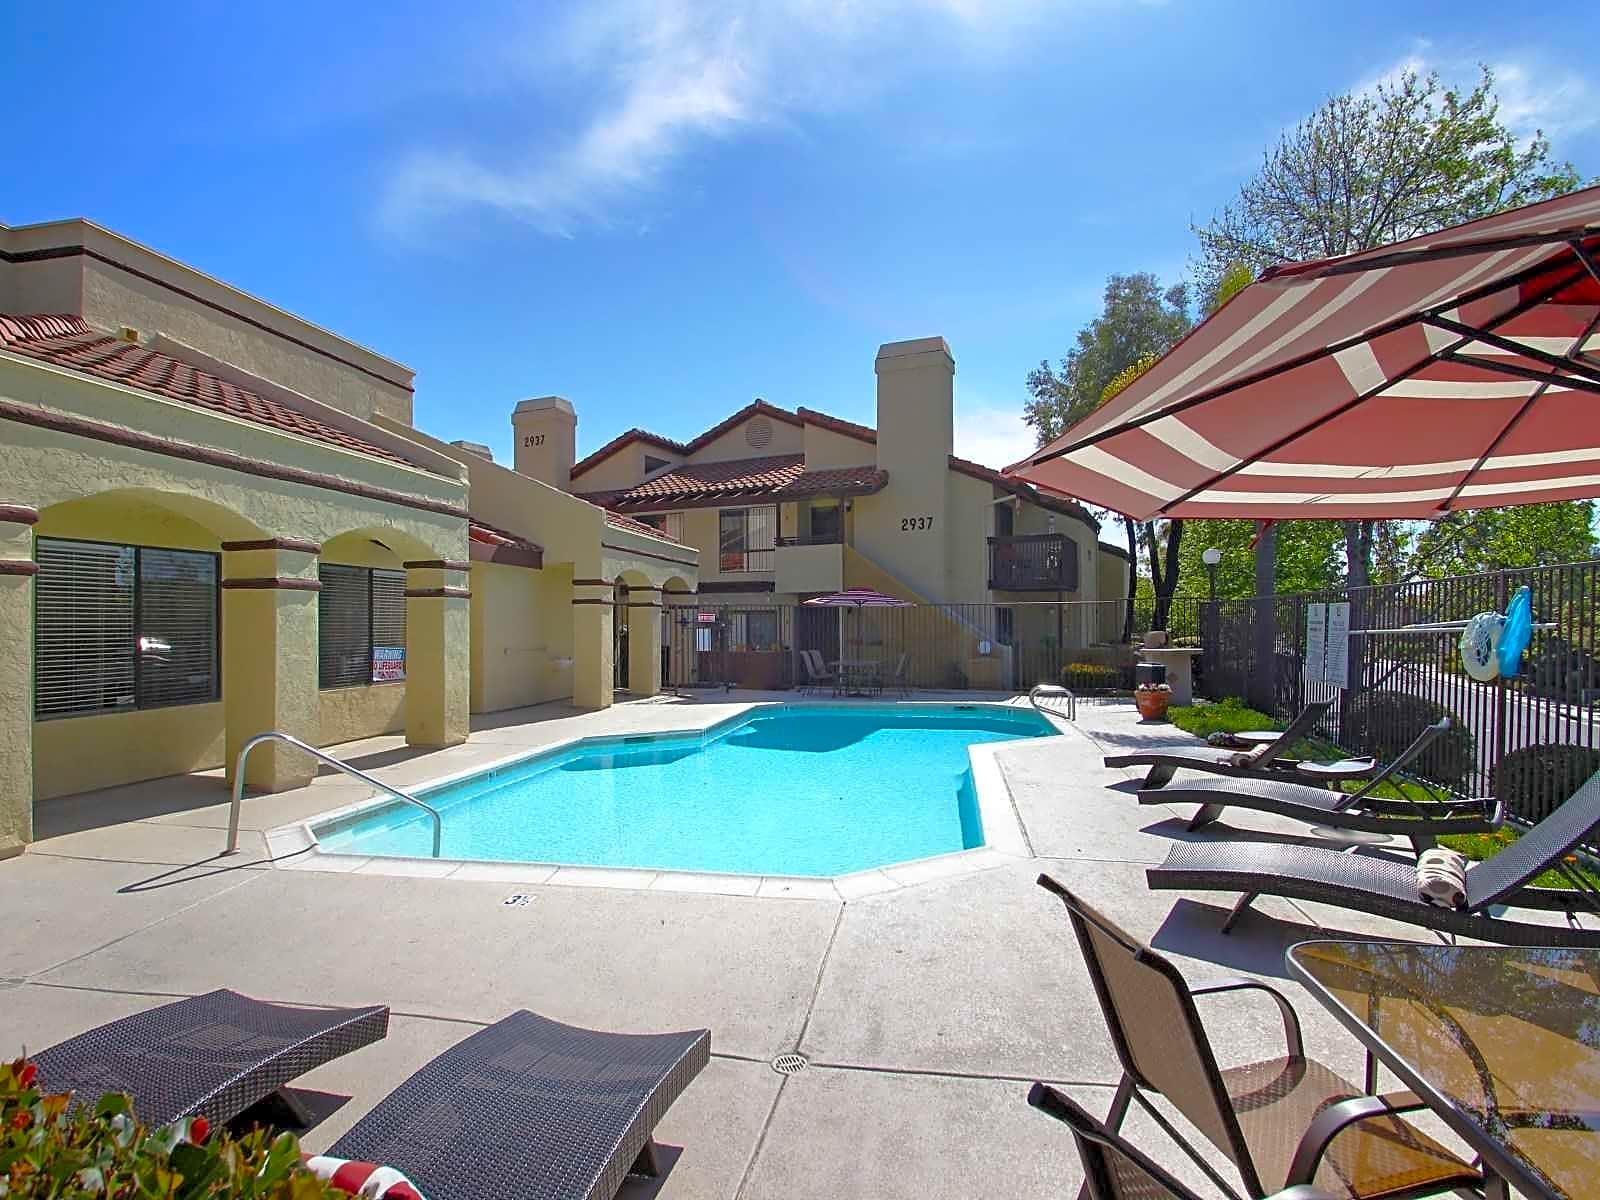 Sommerset La Costa for rent in Carlsbad